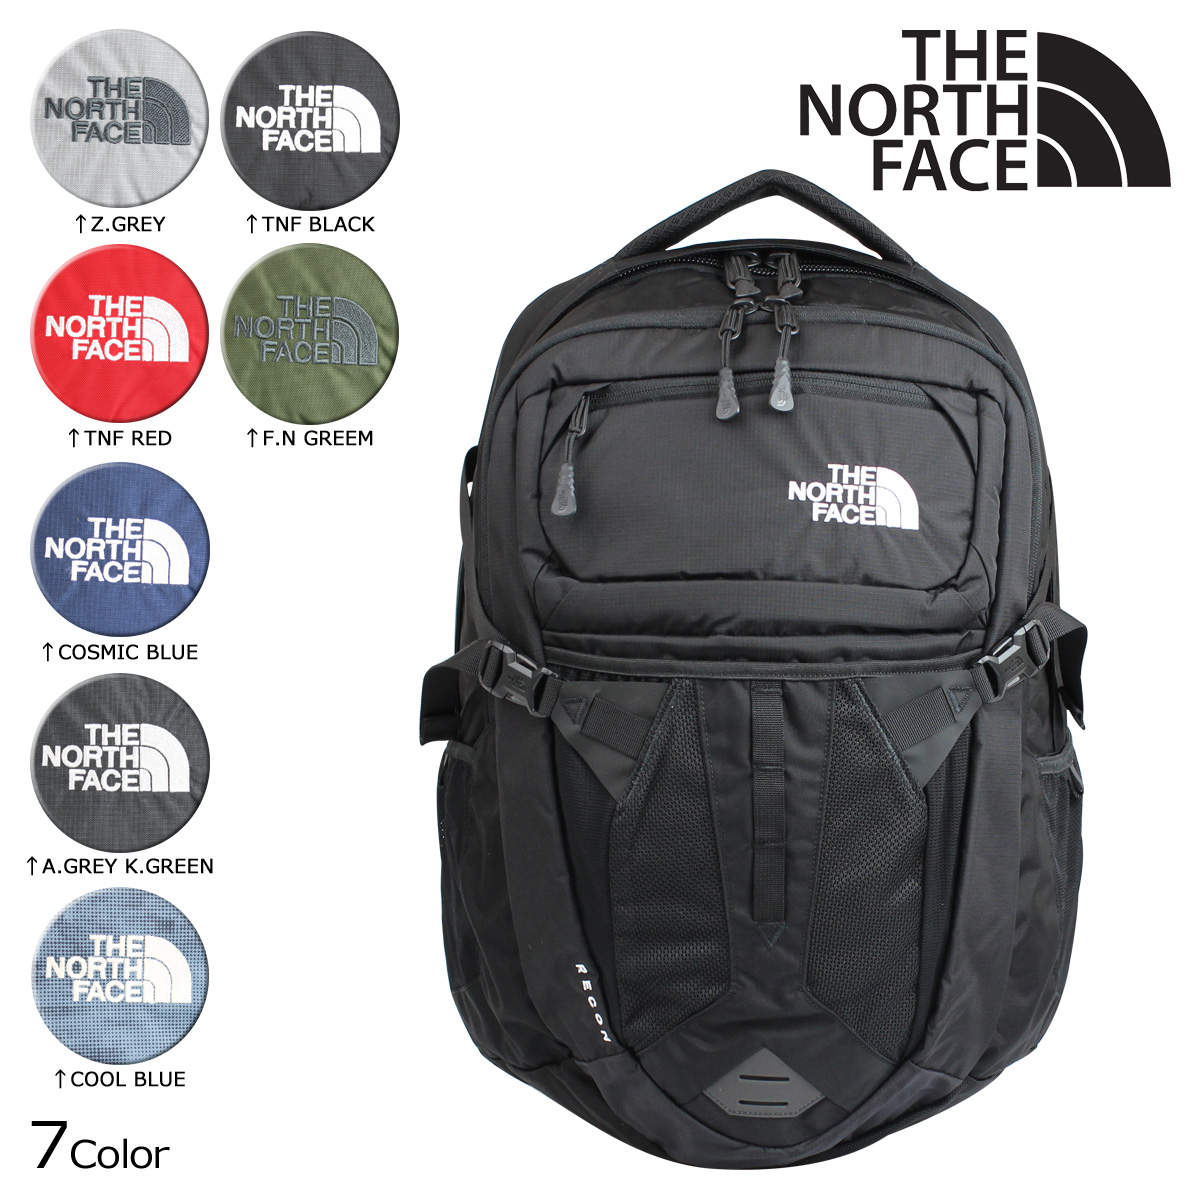 a895df15a The North Face Green Backpack - CEAGESP